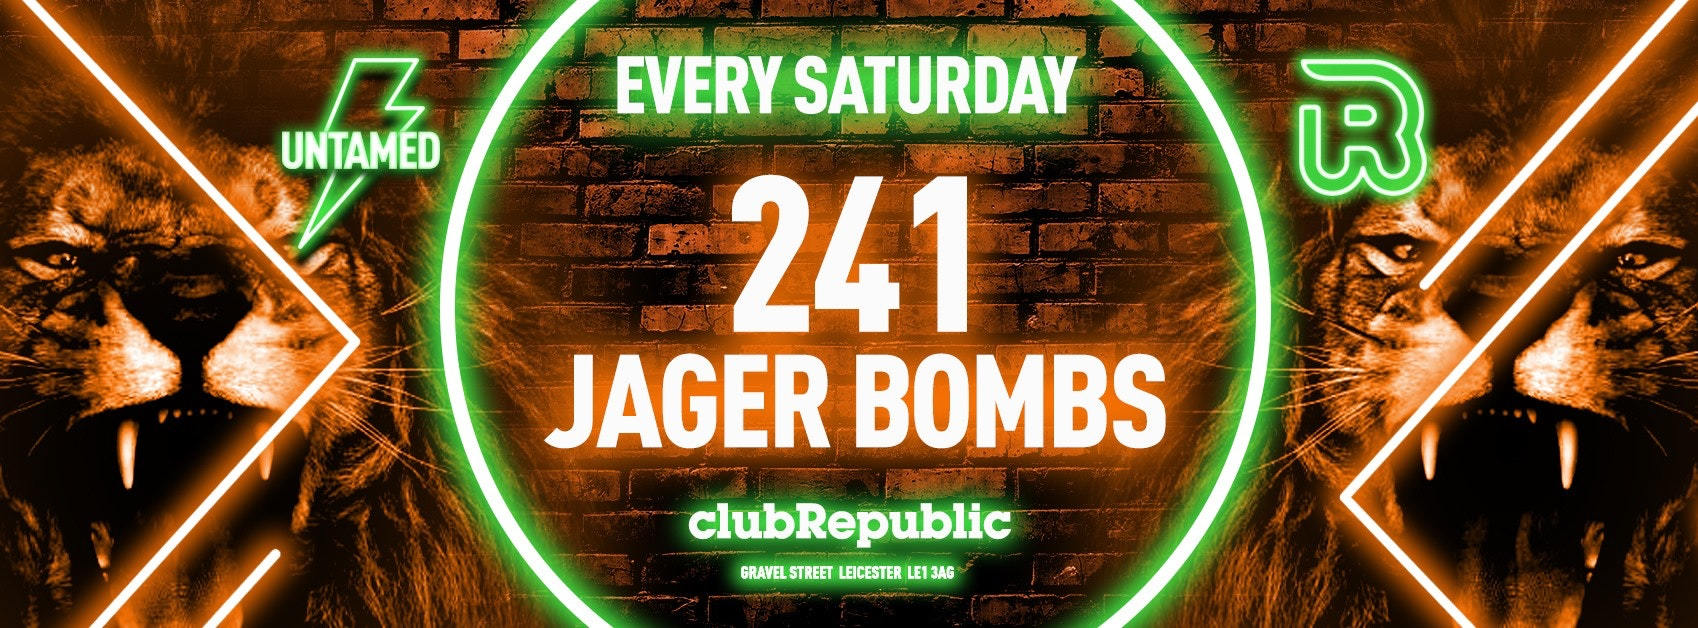 UNTAMED SATURDAY // 241 JAGERBOMBS! // FREE ENTRY FIRST 500 PEOPLE!